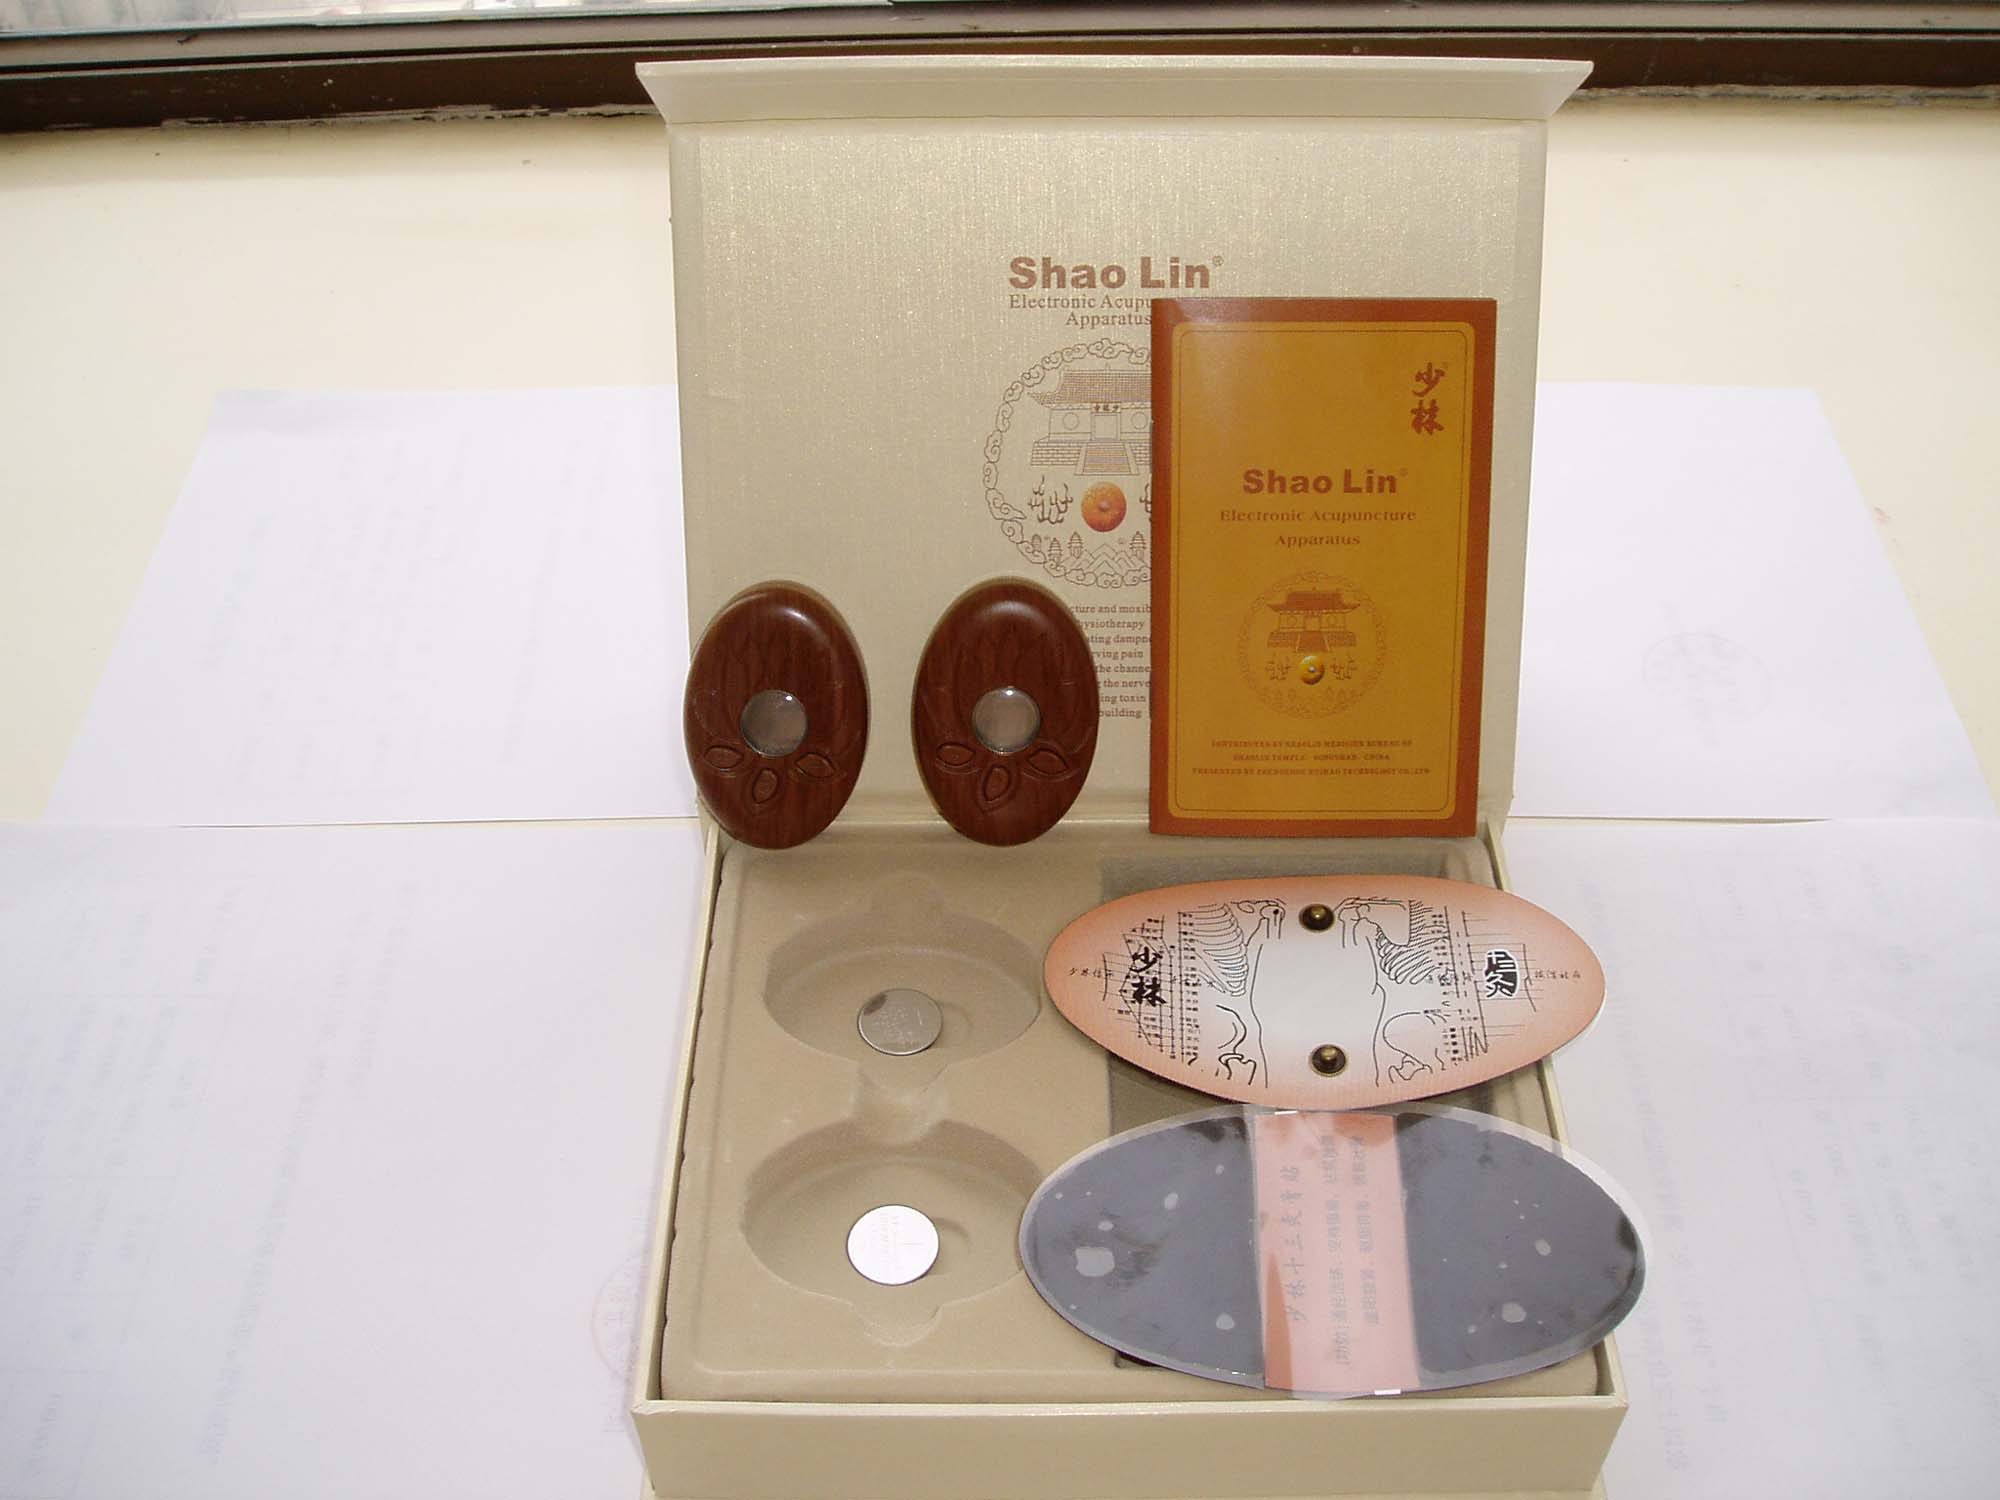 Shaolin Electronic Acupuncture Apparatus